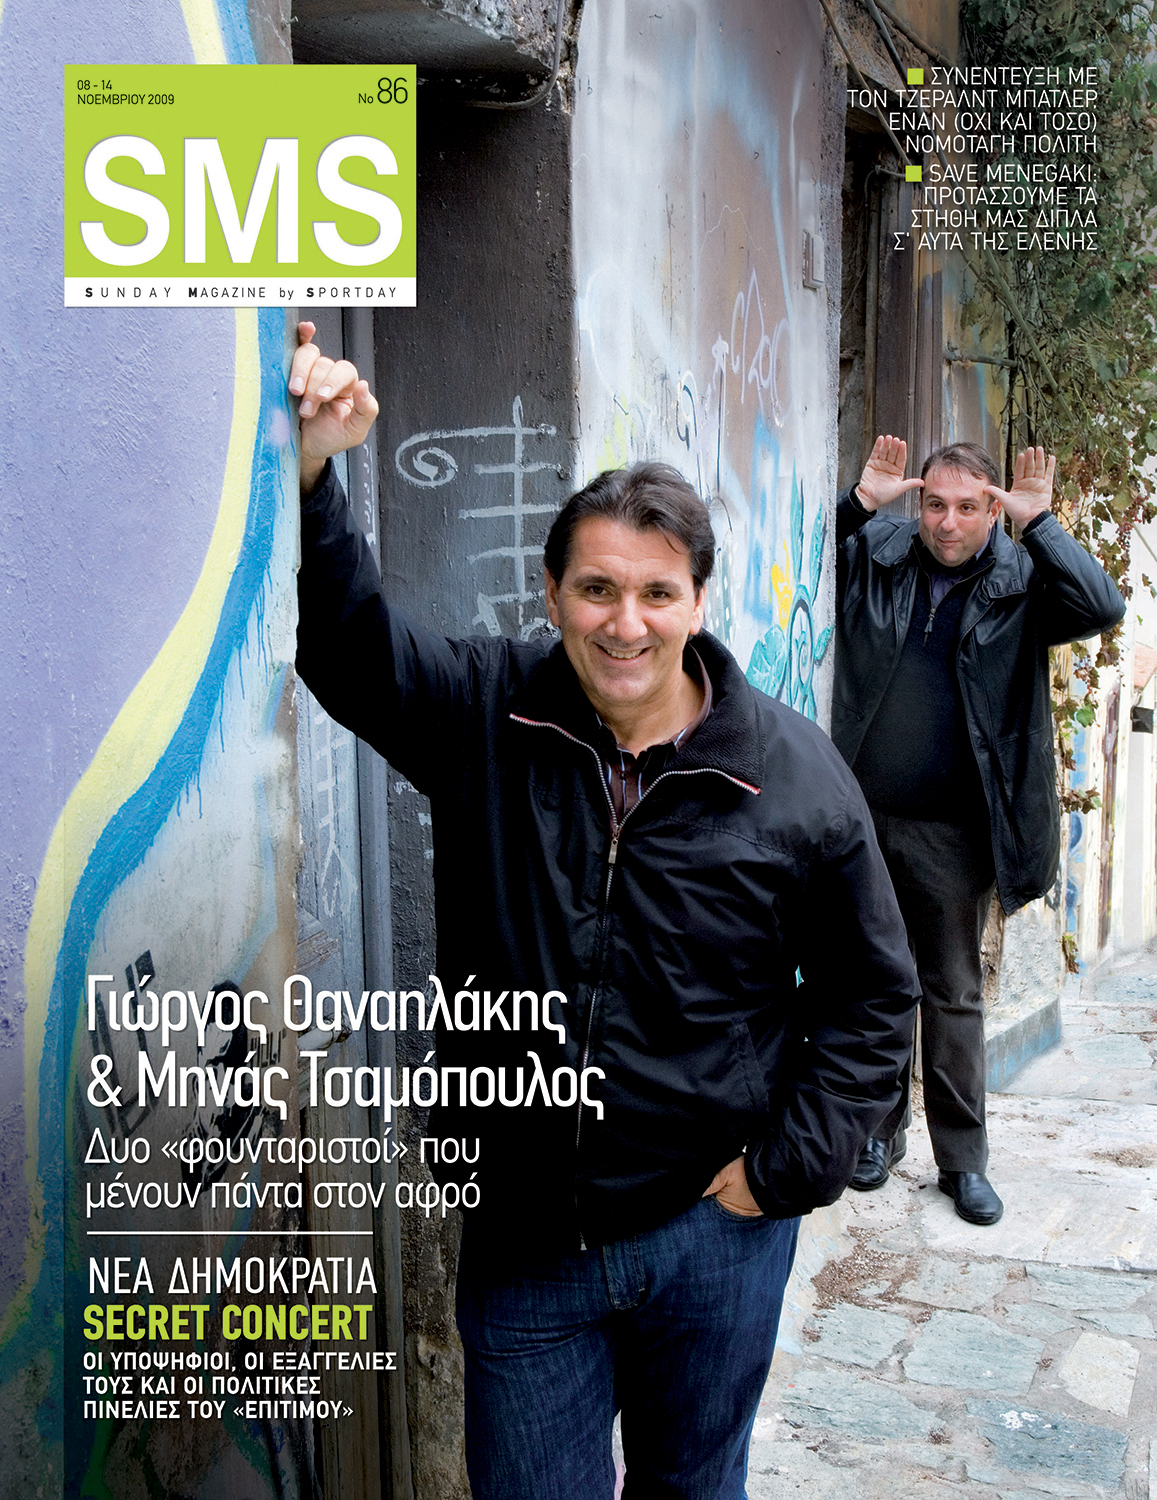 George Thanailakis-Minas Tsamopoulos / journalists / SMS Sportday No 86